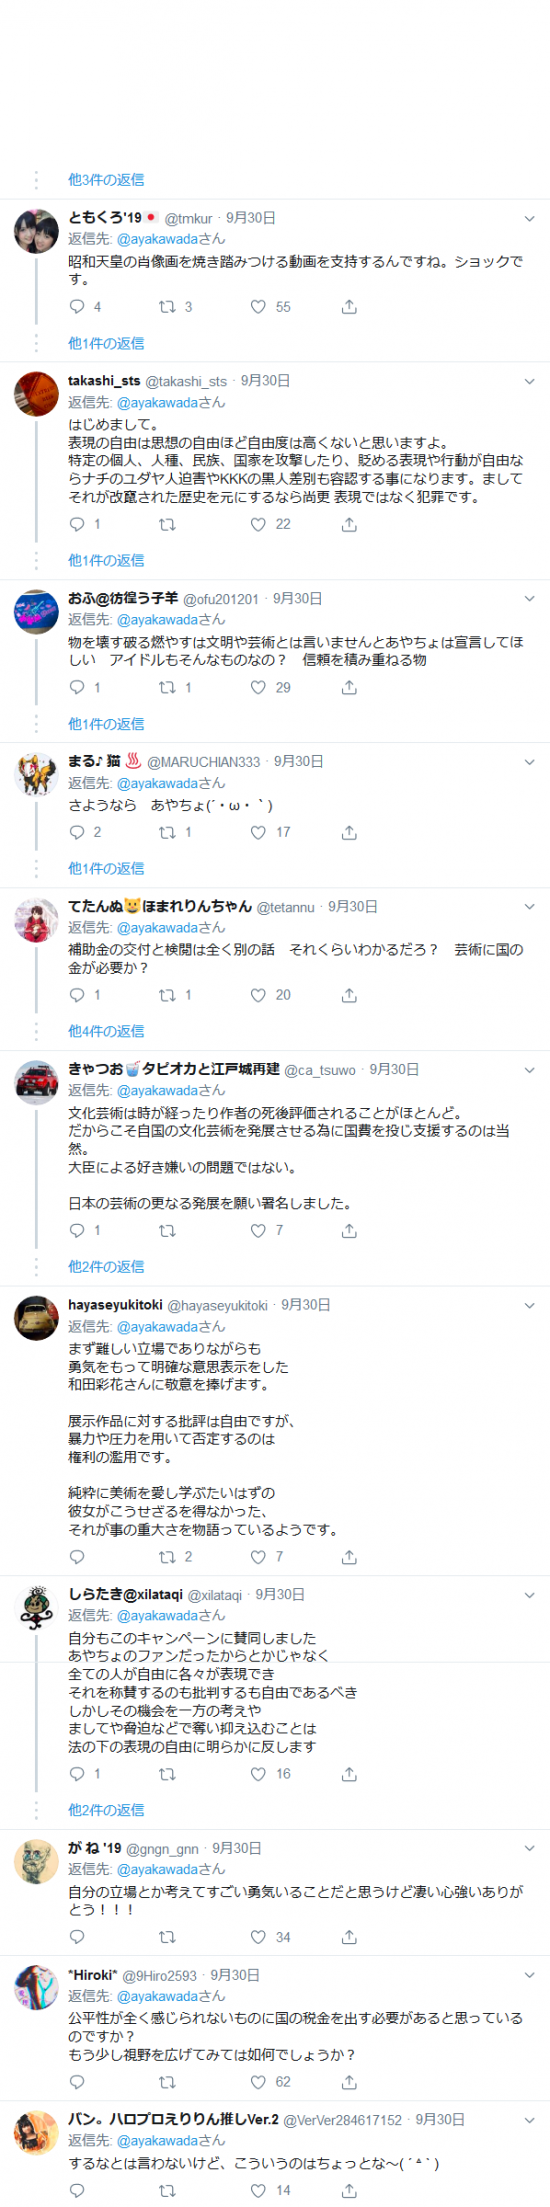 Screenshot_2019-10-08 和田彩花さんはTwitterを使っています 「https t co F0asyH3GNh」 Twitter(1).png